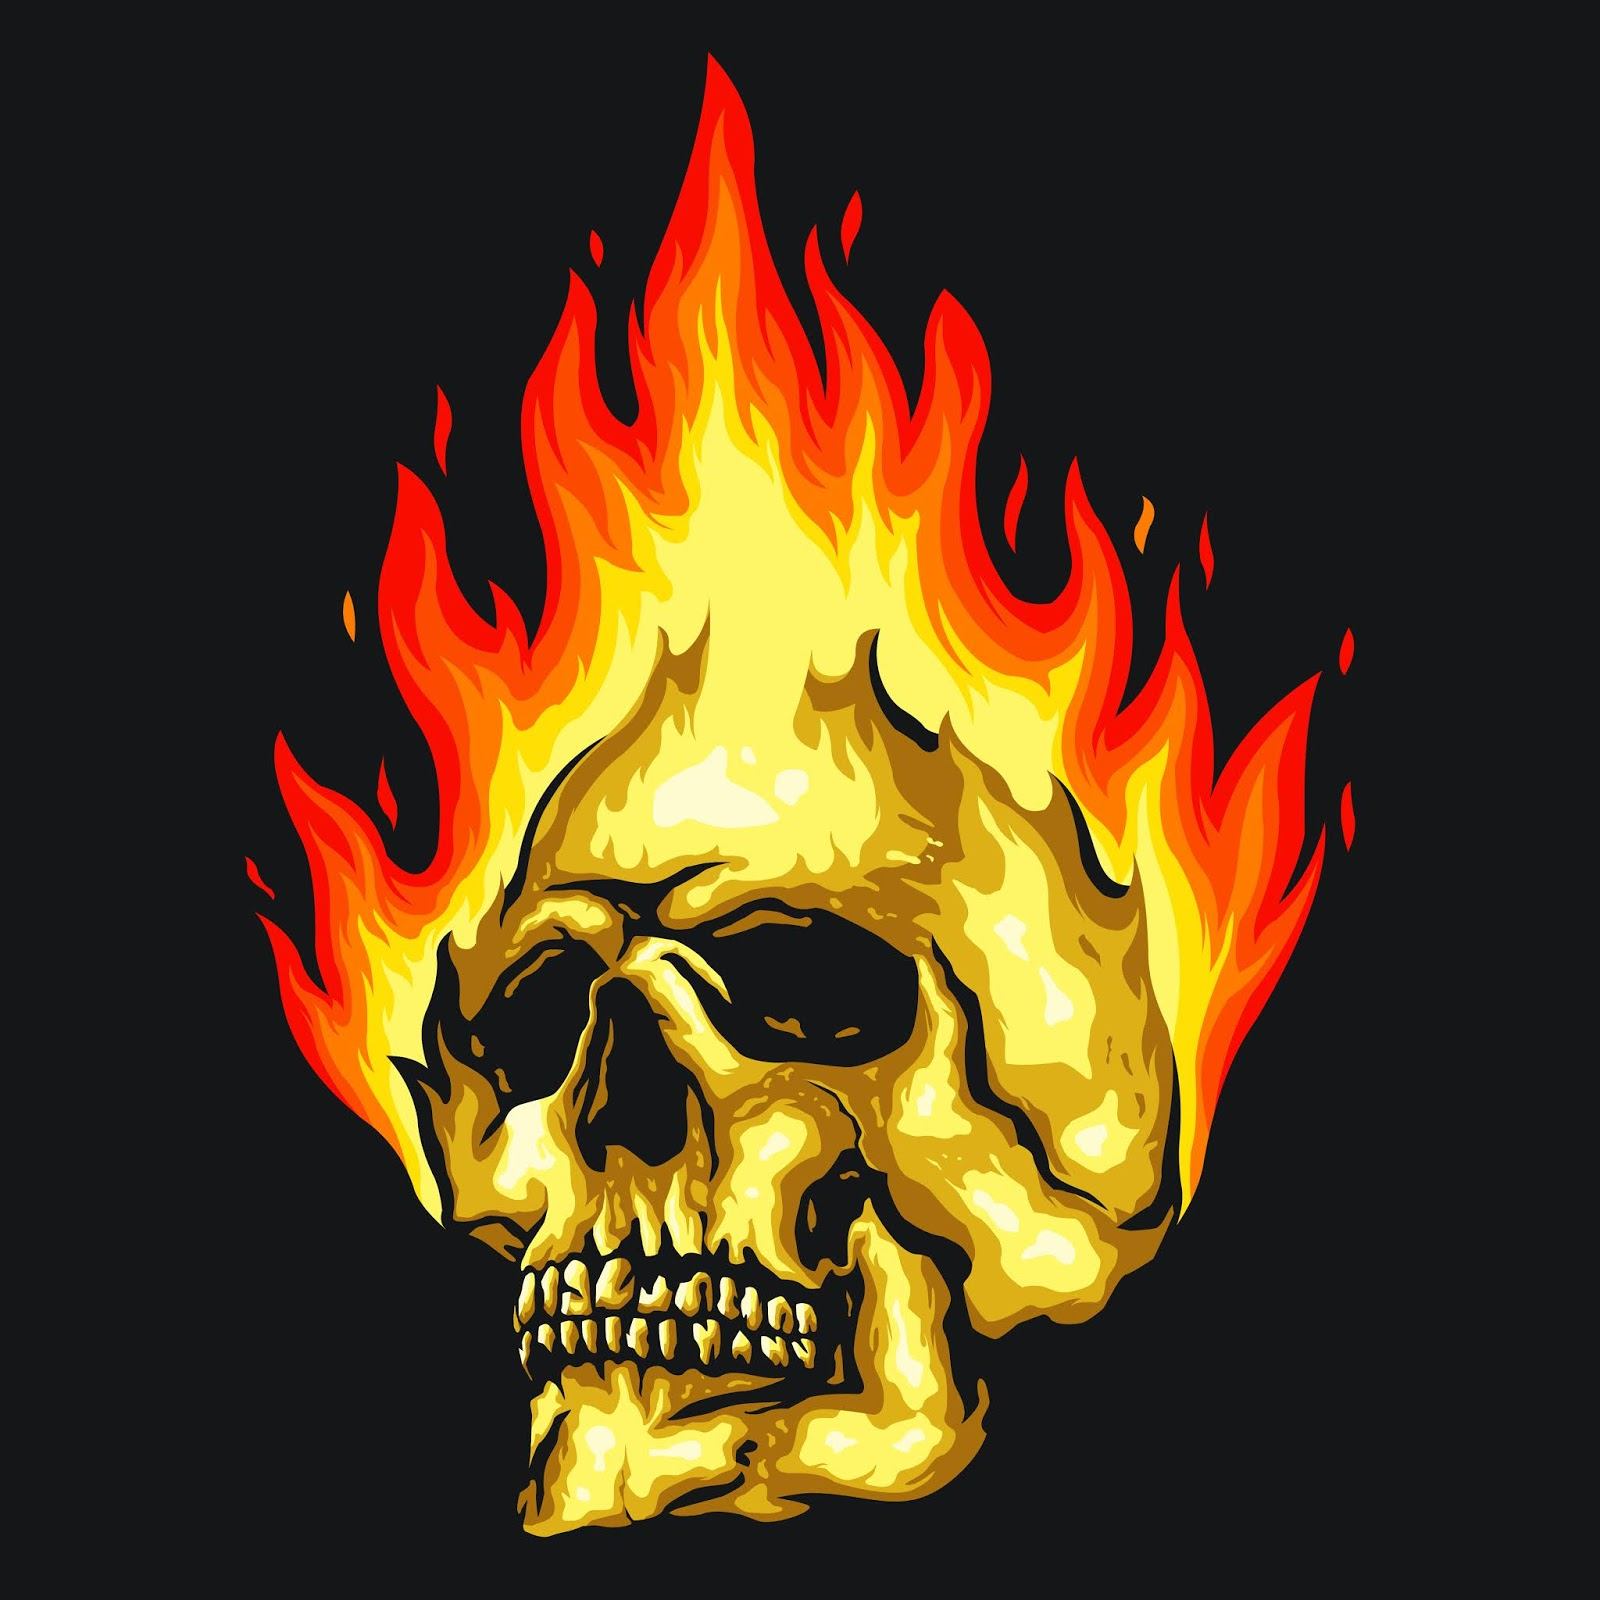 Skull Fire Illustration Free Download Vector CDR, AI, EPS and PNG Formats